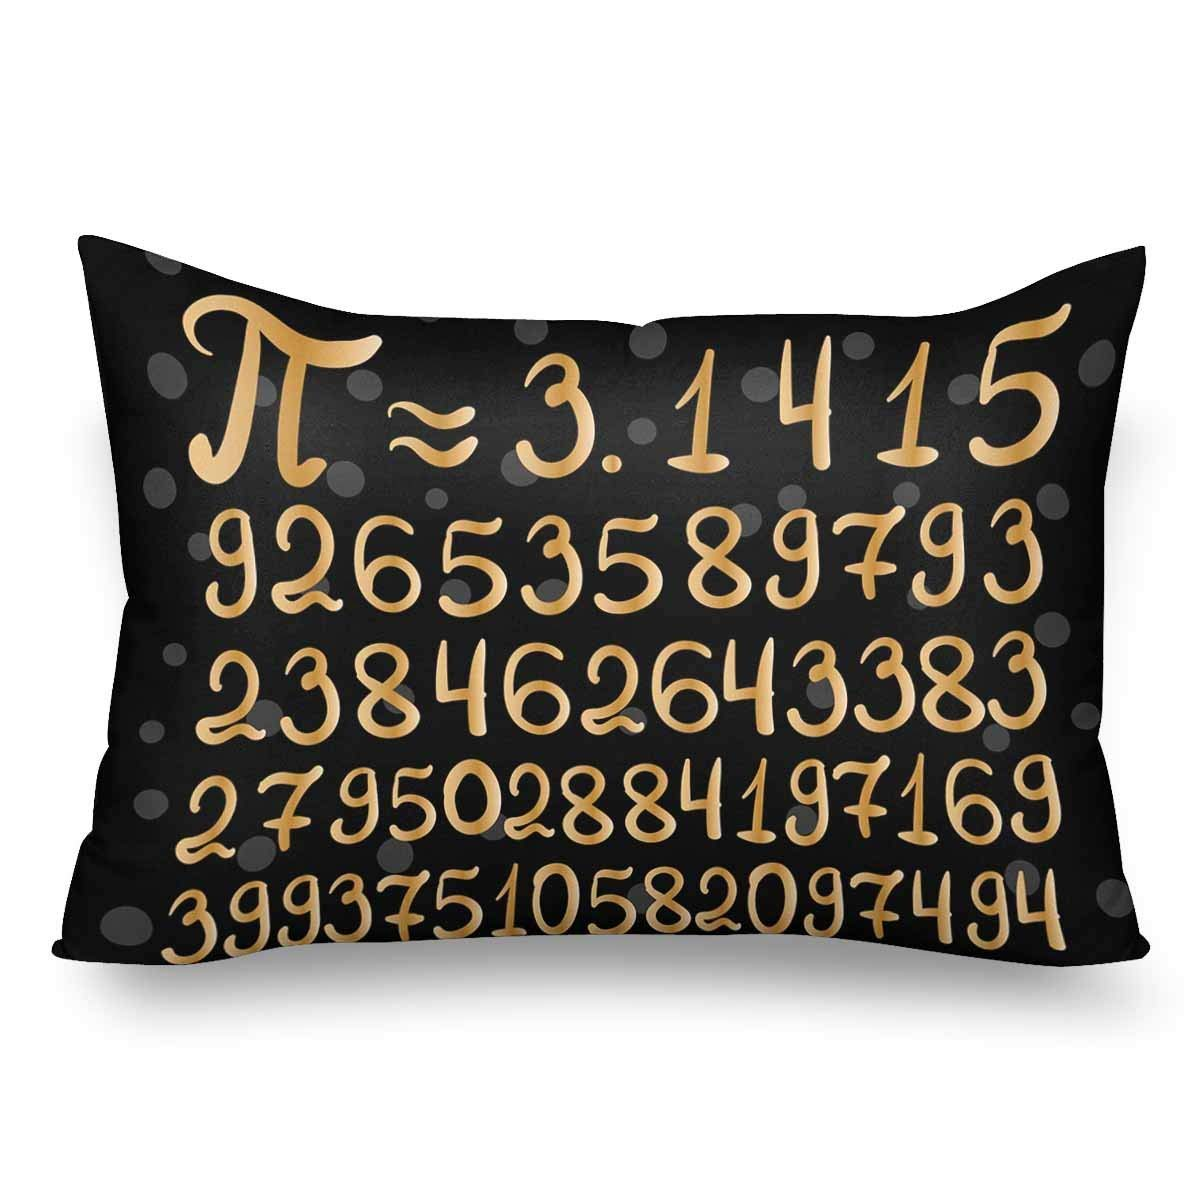 GCKG Inscription Number Pi Print Pattern Pillow Cases Pillowcase 20x30 inches - image 4 of 4